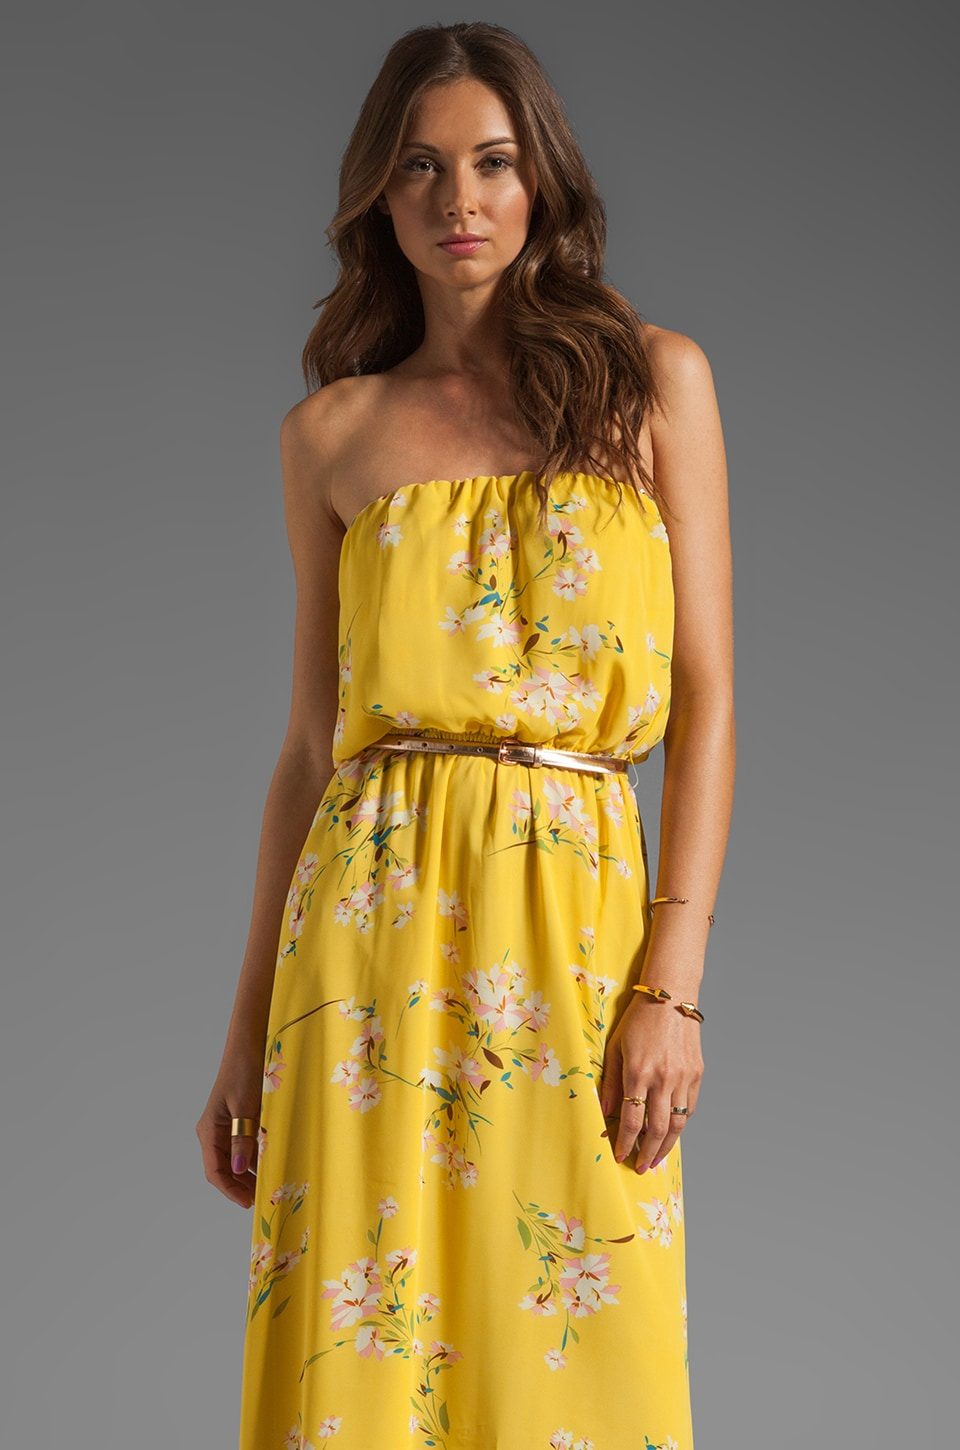 JARLO Layla Floral Maxi Dress in Yellow